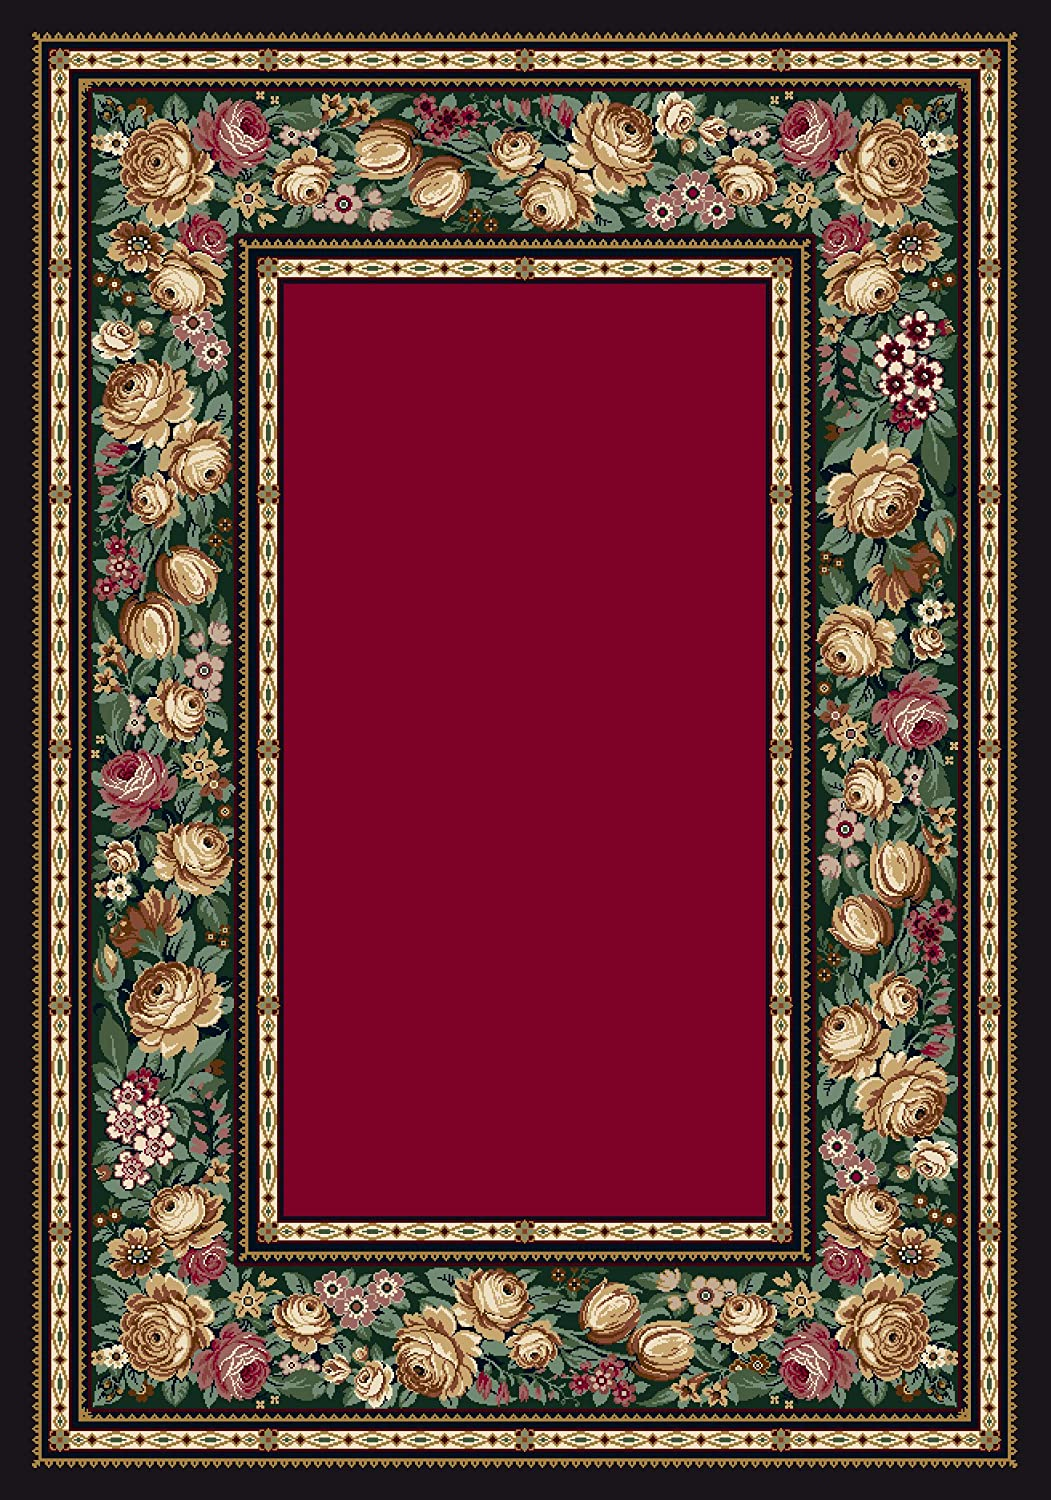 Milliken English Floral Rectangle Area Ruby Spasm price Rug x 5'4